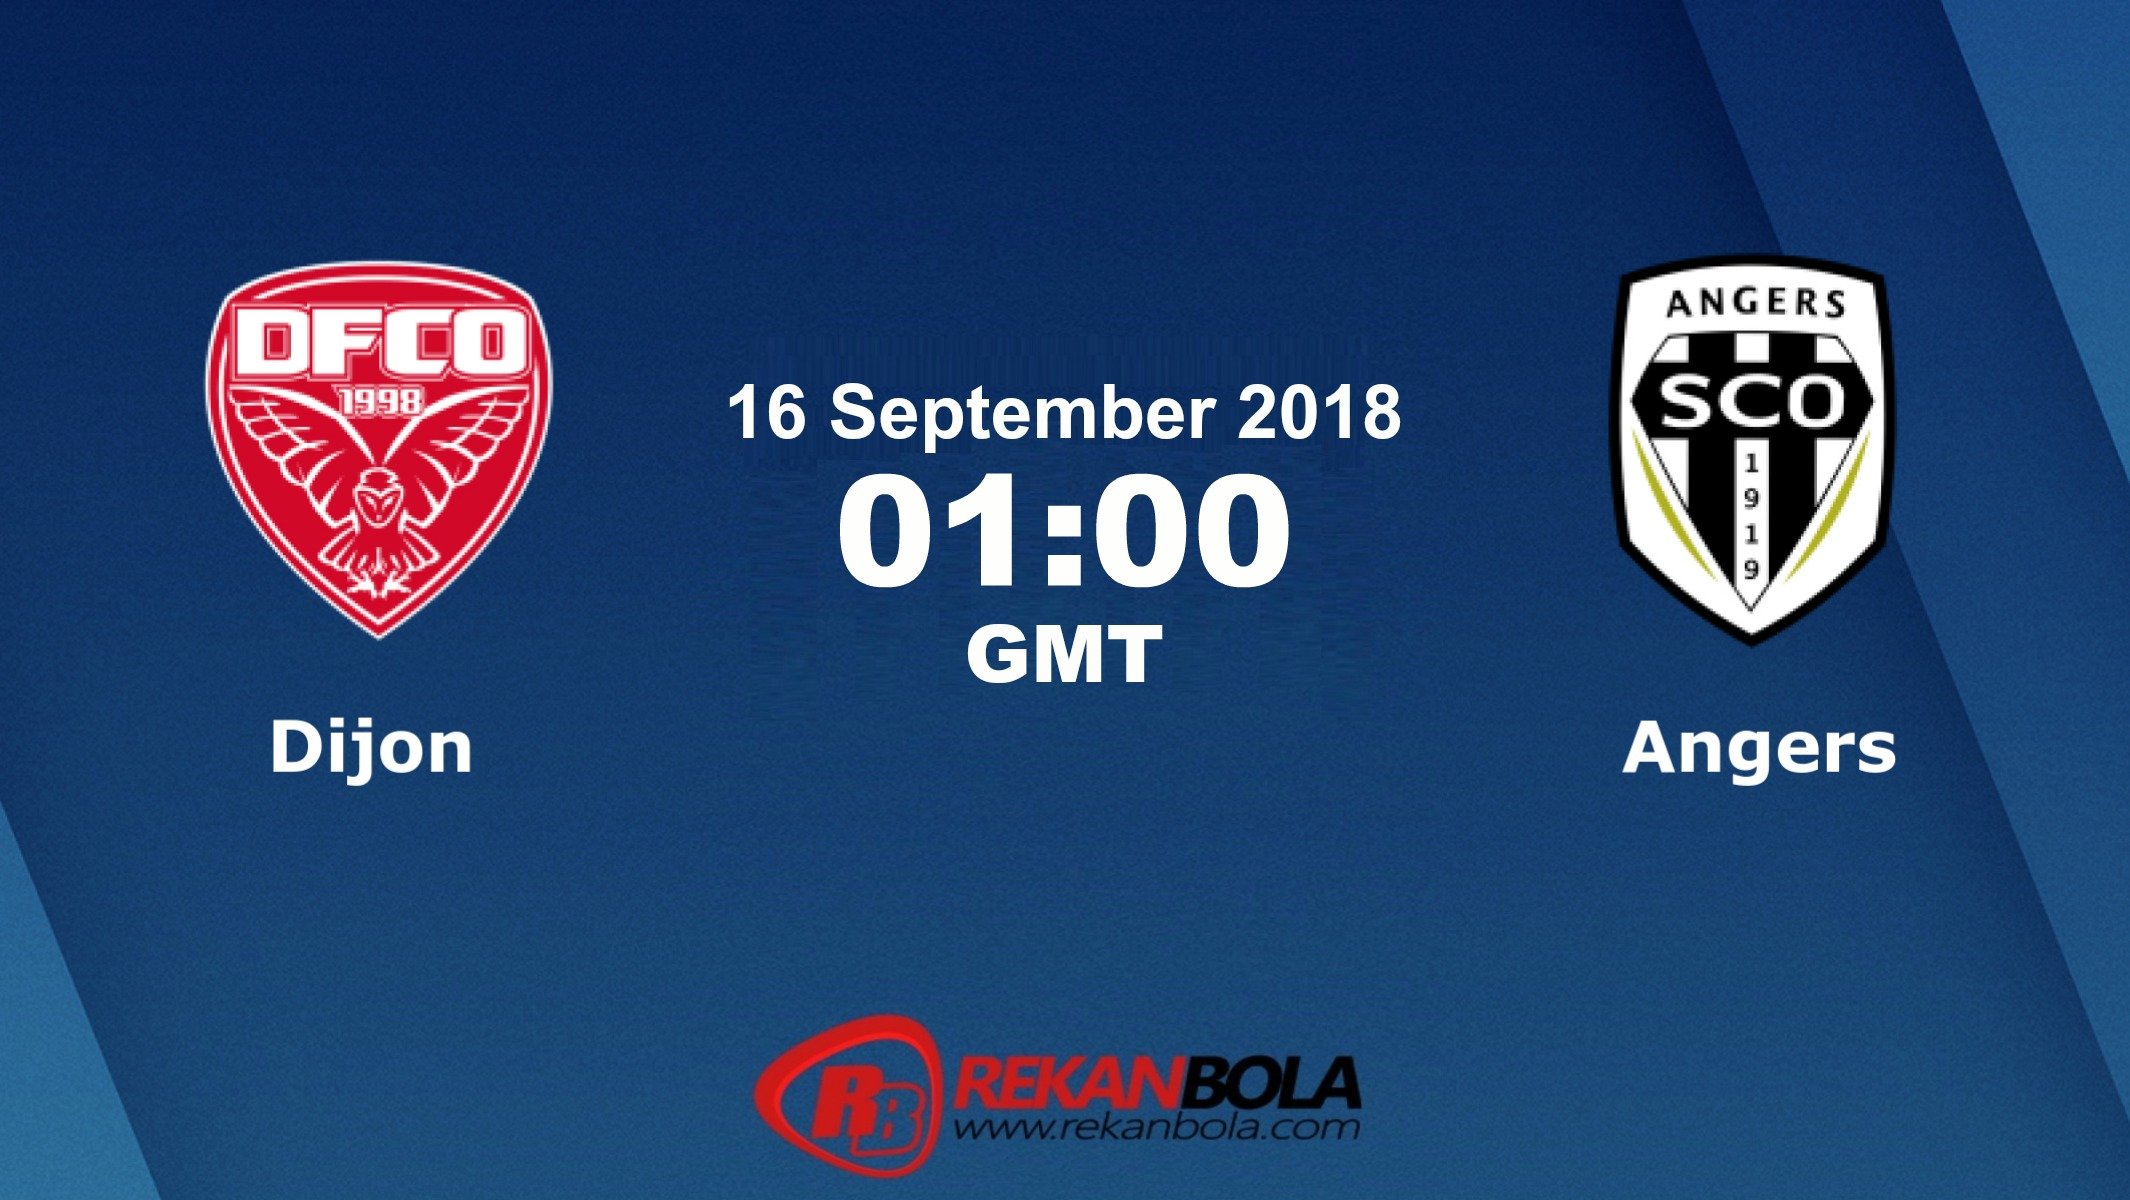 Nonton Siaran Live Streaming Dijon Vs Angers 16 September 2018